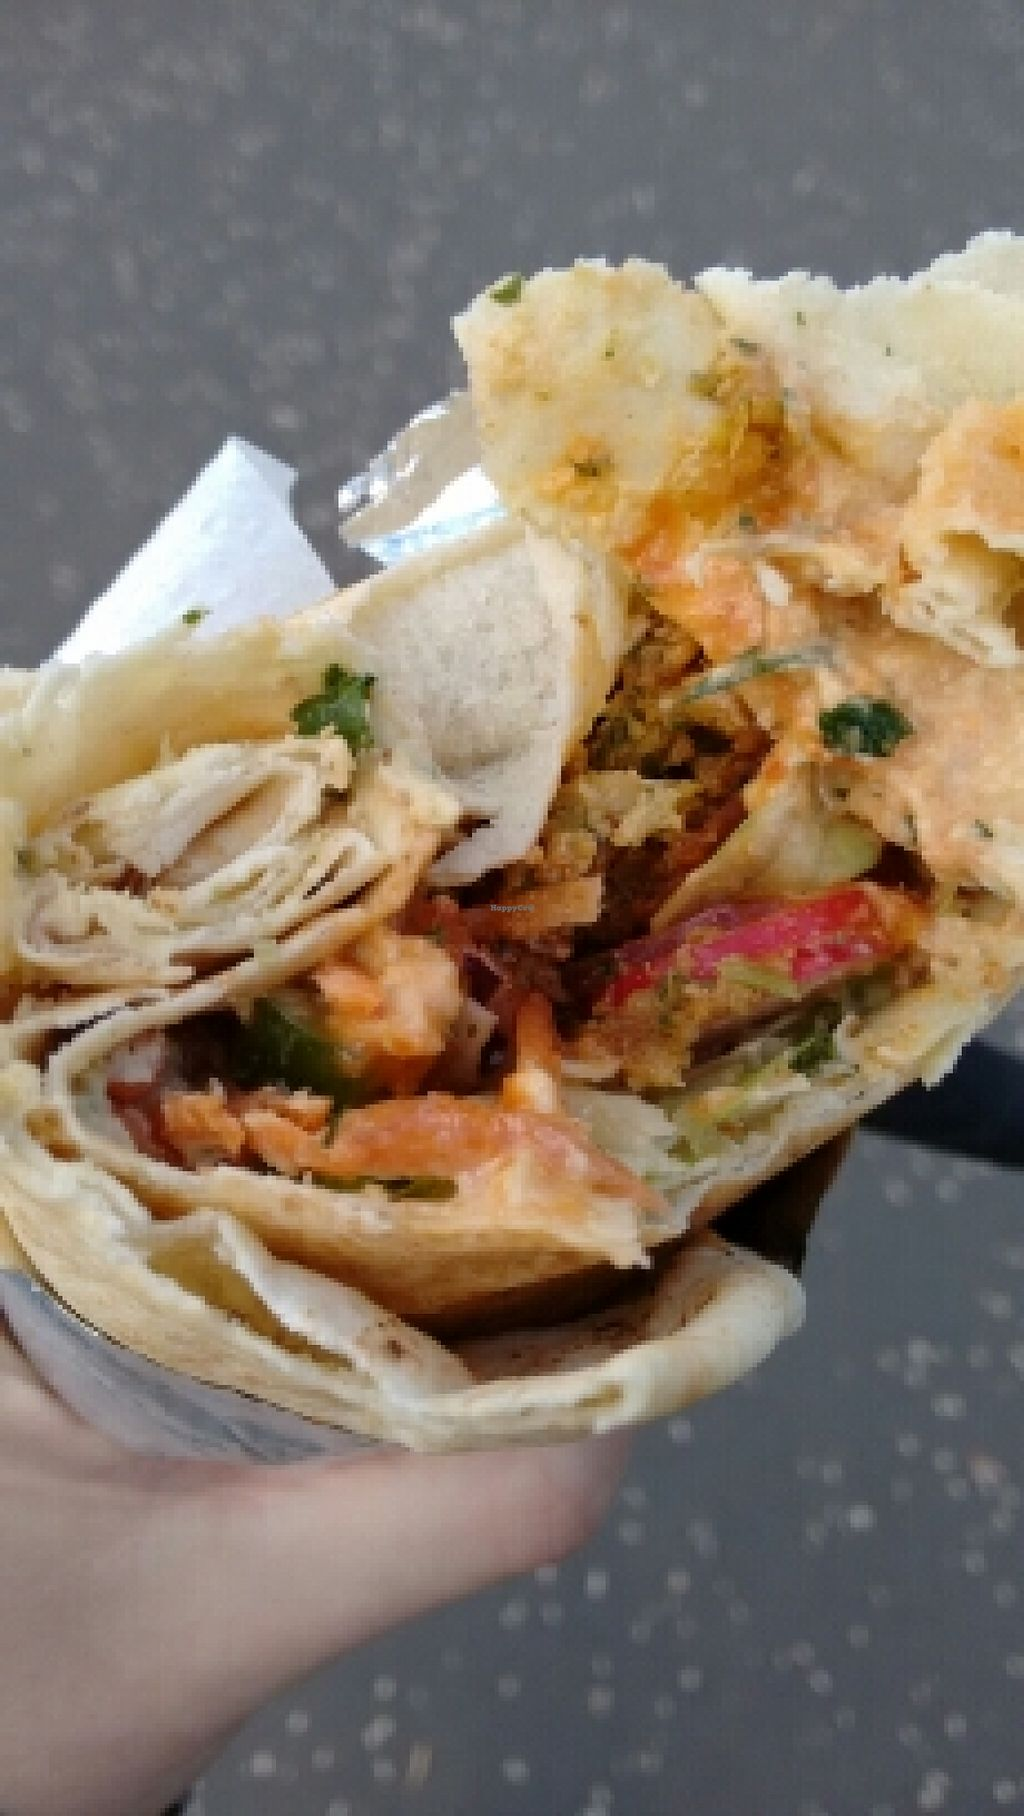 """Photo of Fired Up Food Hut  by <a href=""""/members/profile/craigmc"""">craigmc</a> <br/>great falafel wrap, and my thumb <br/> April 28, 2016  - <a href='/contact/abuse/image/61588/146569'>Report</a>"""